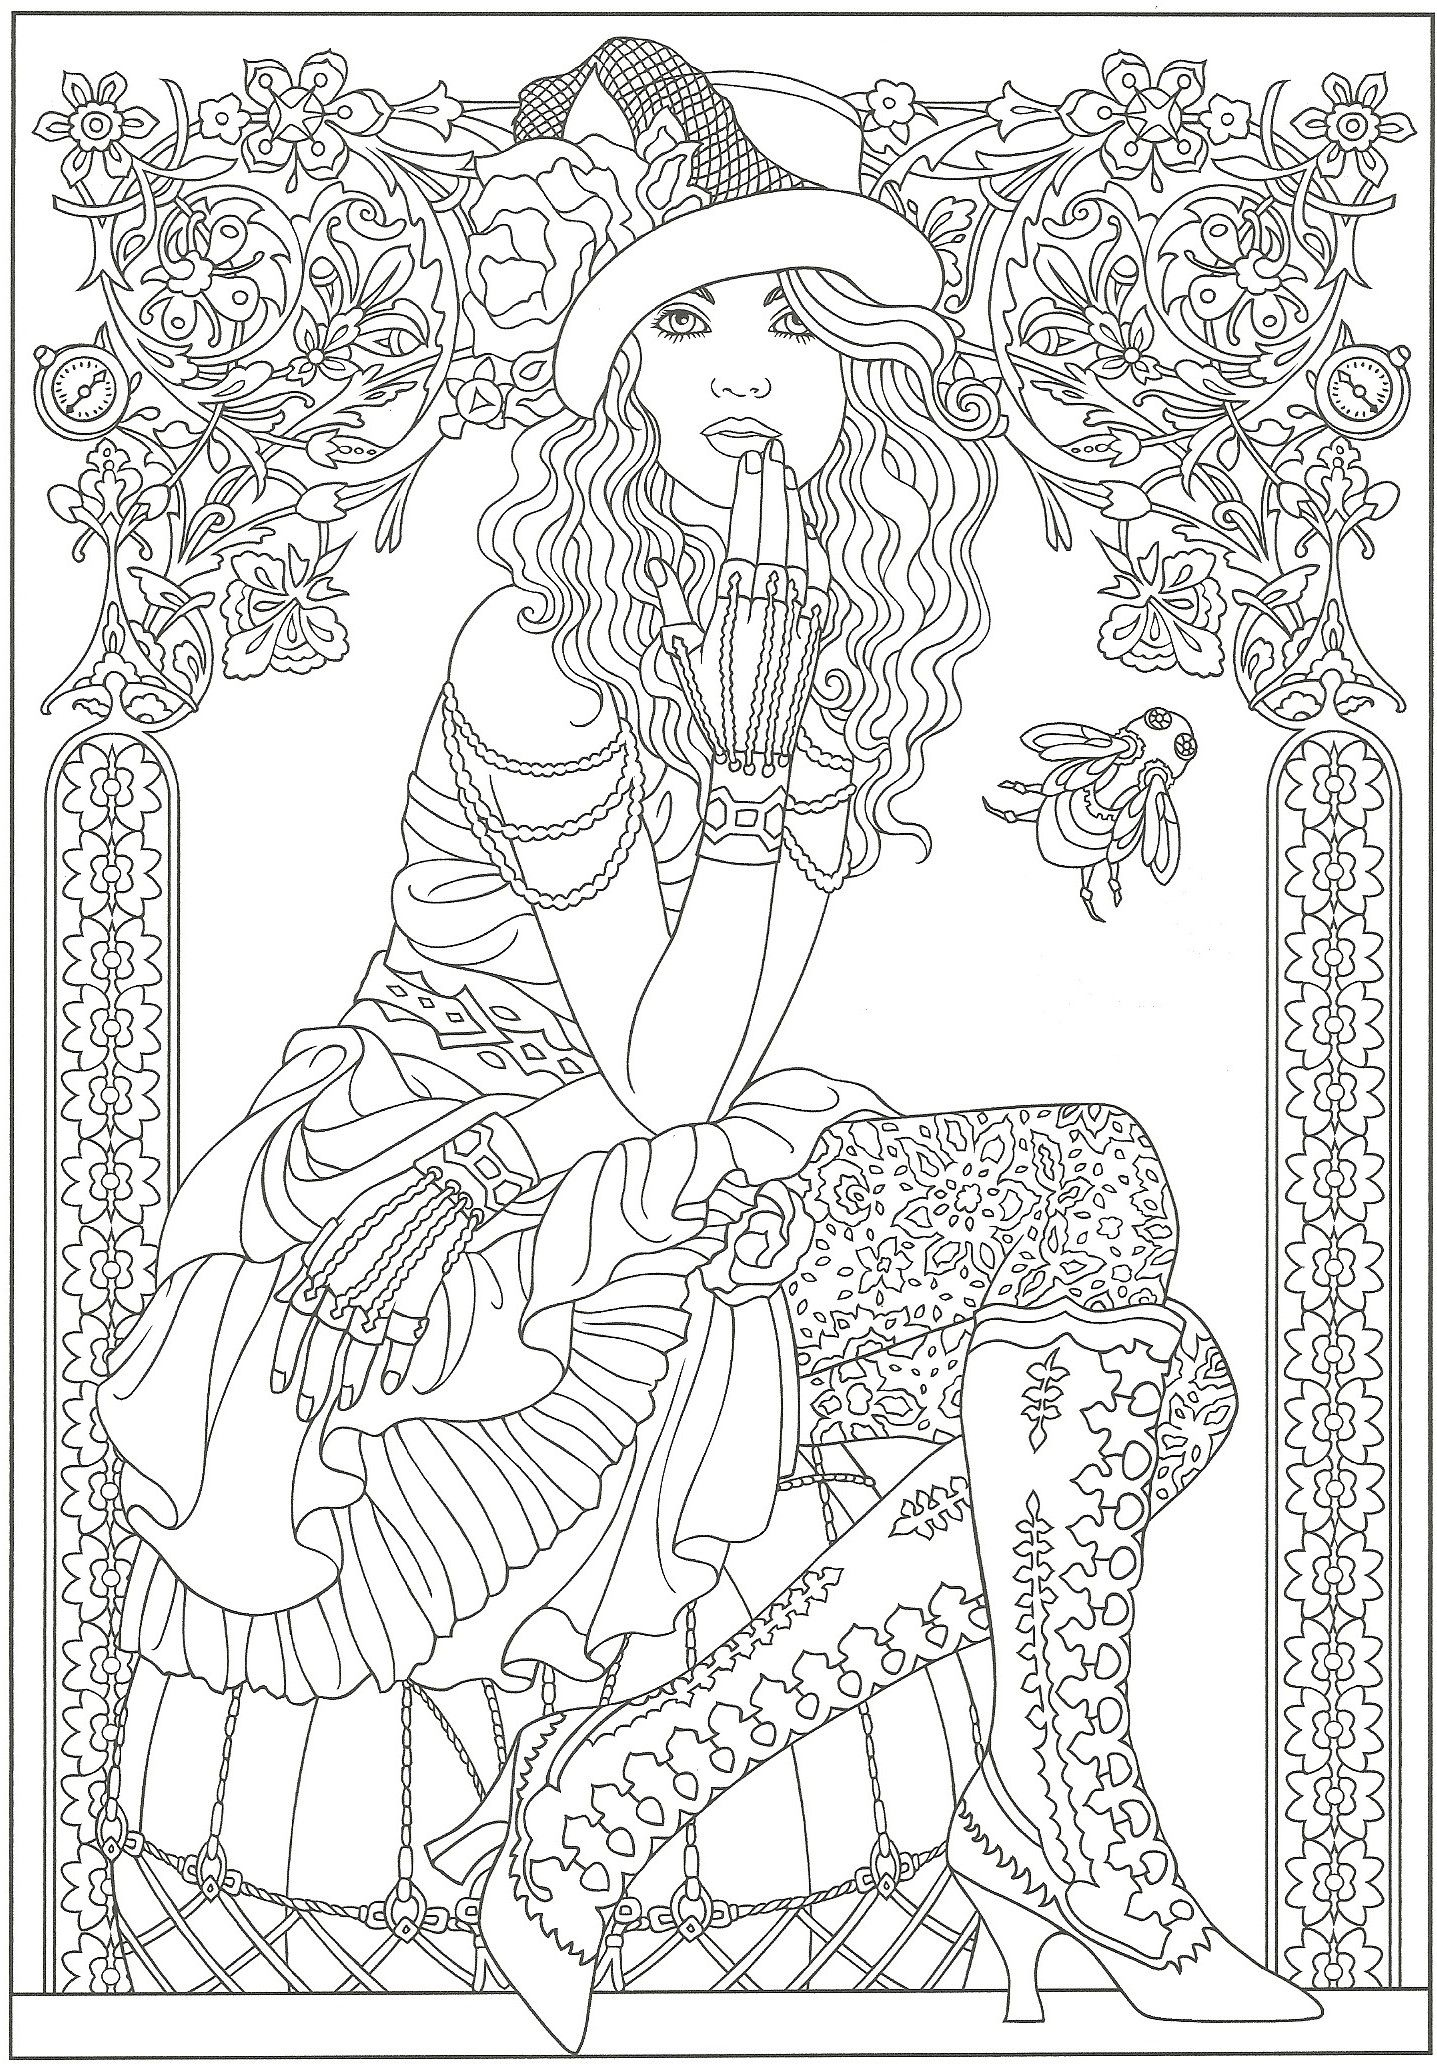 Flower drawings on pinterest dover publications coloring pages and - From Creative Haven Steampunk Fashions Coloring Book Dover Publications